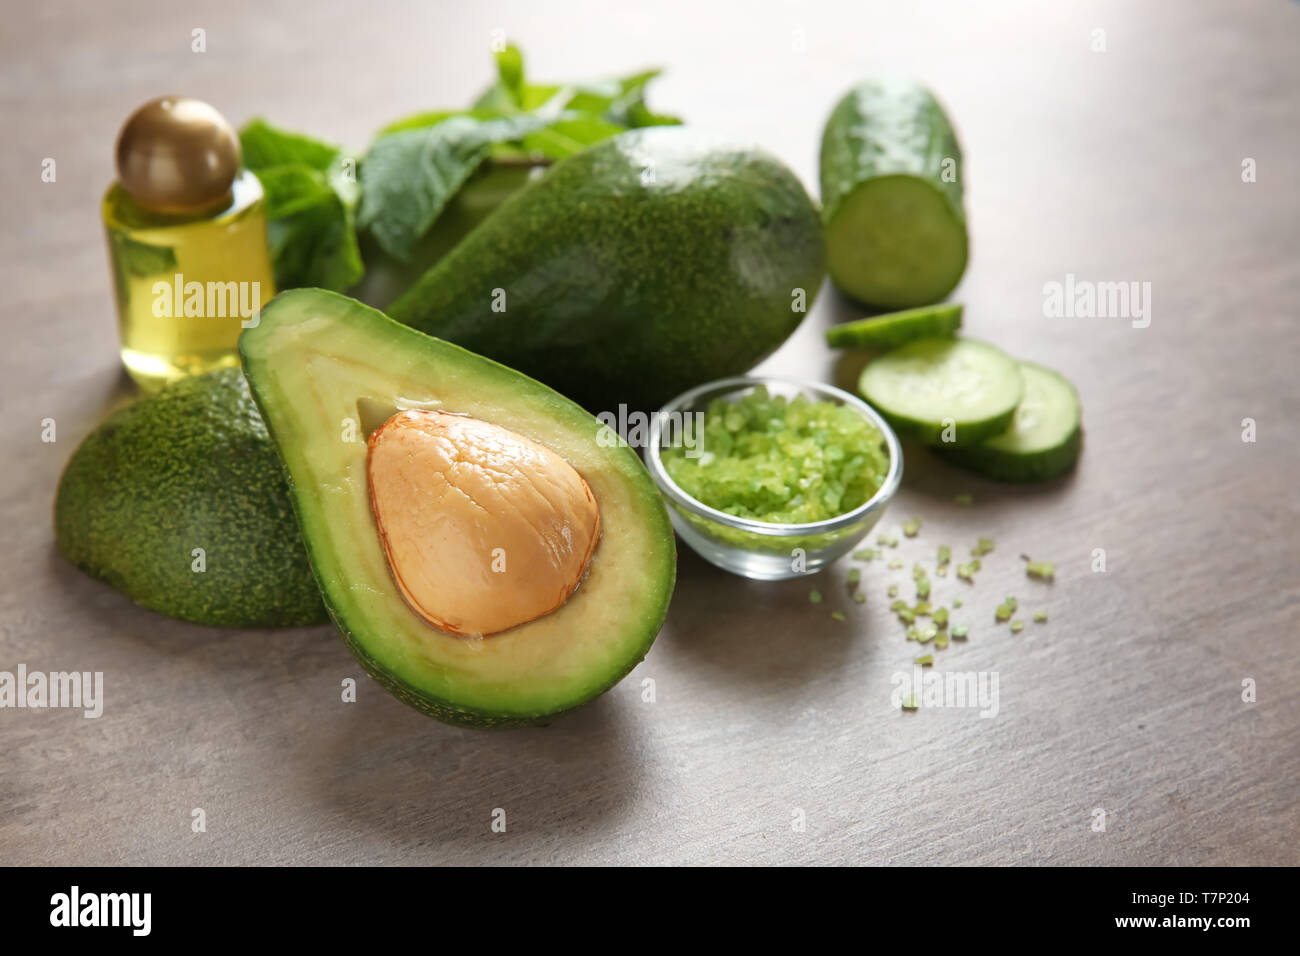 Avocado with ingredients for natural homemade cosmetics on grey